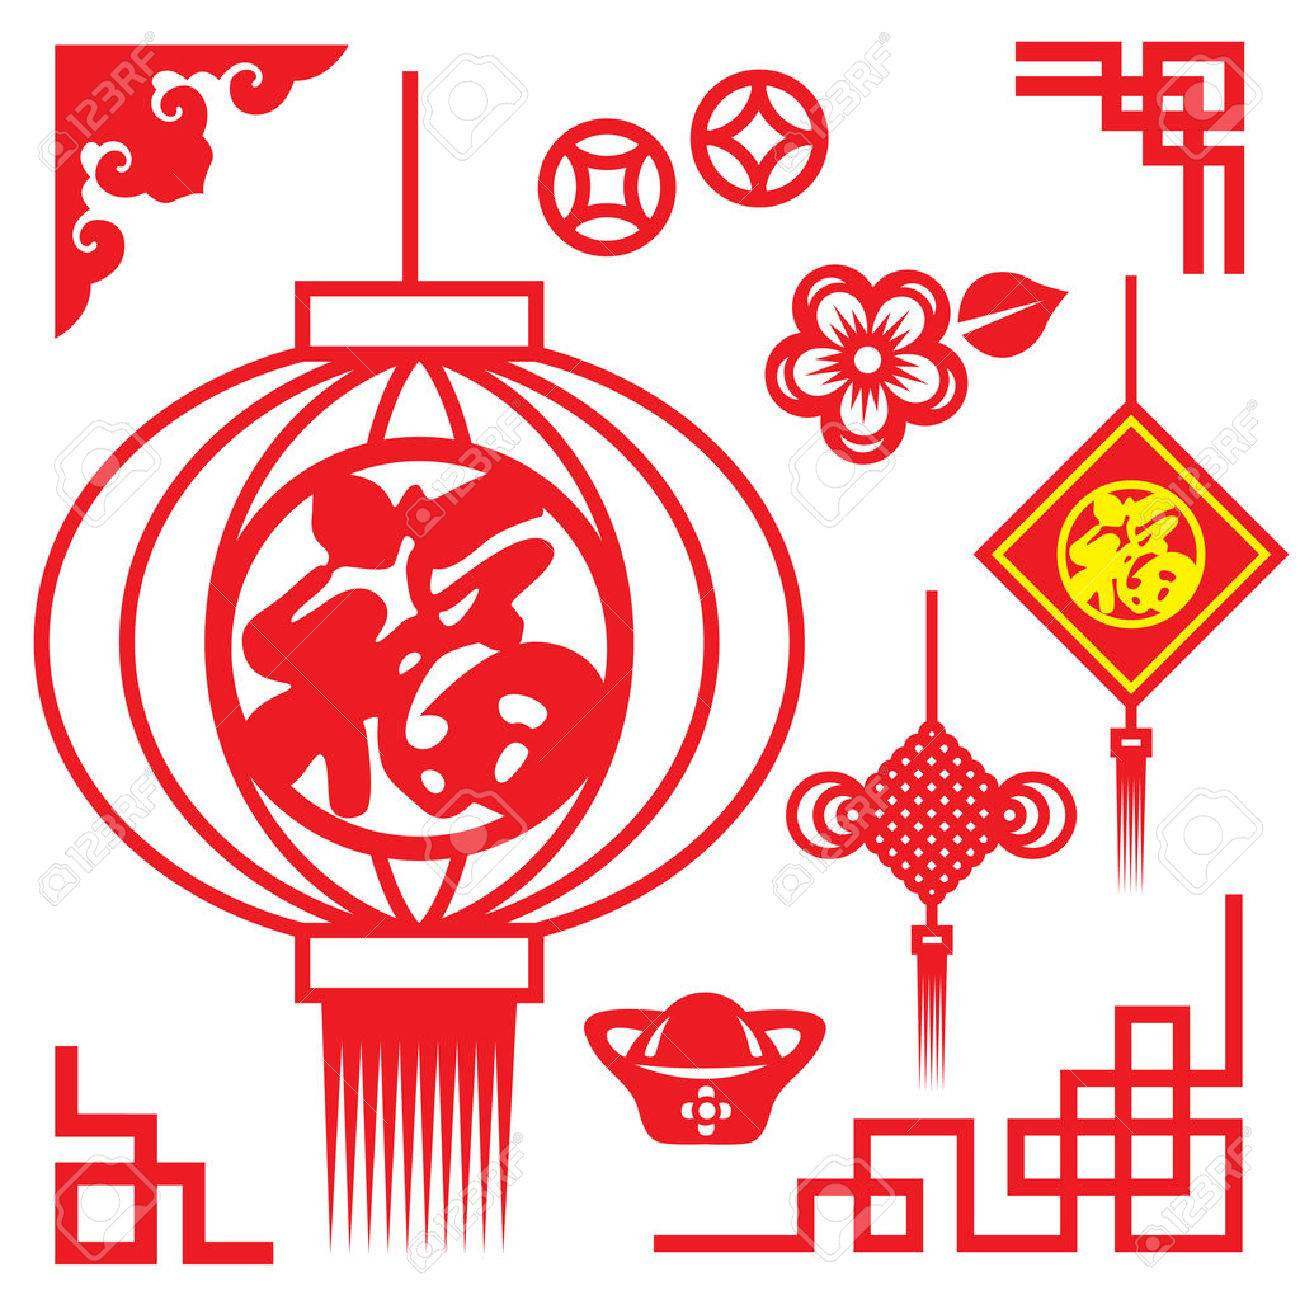 Lanterns frame conner flower money coin china and china knot lanterns frame conner flower money coin china and china knot and chinese word mean happiness stock jeuxipadfo Image collections